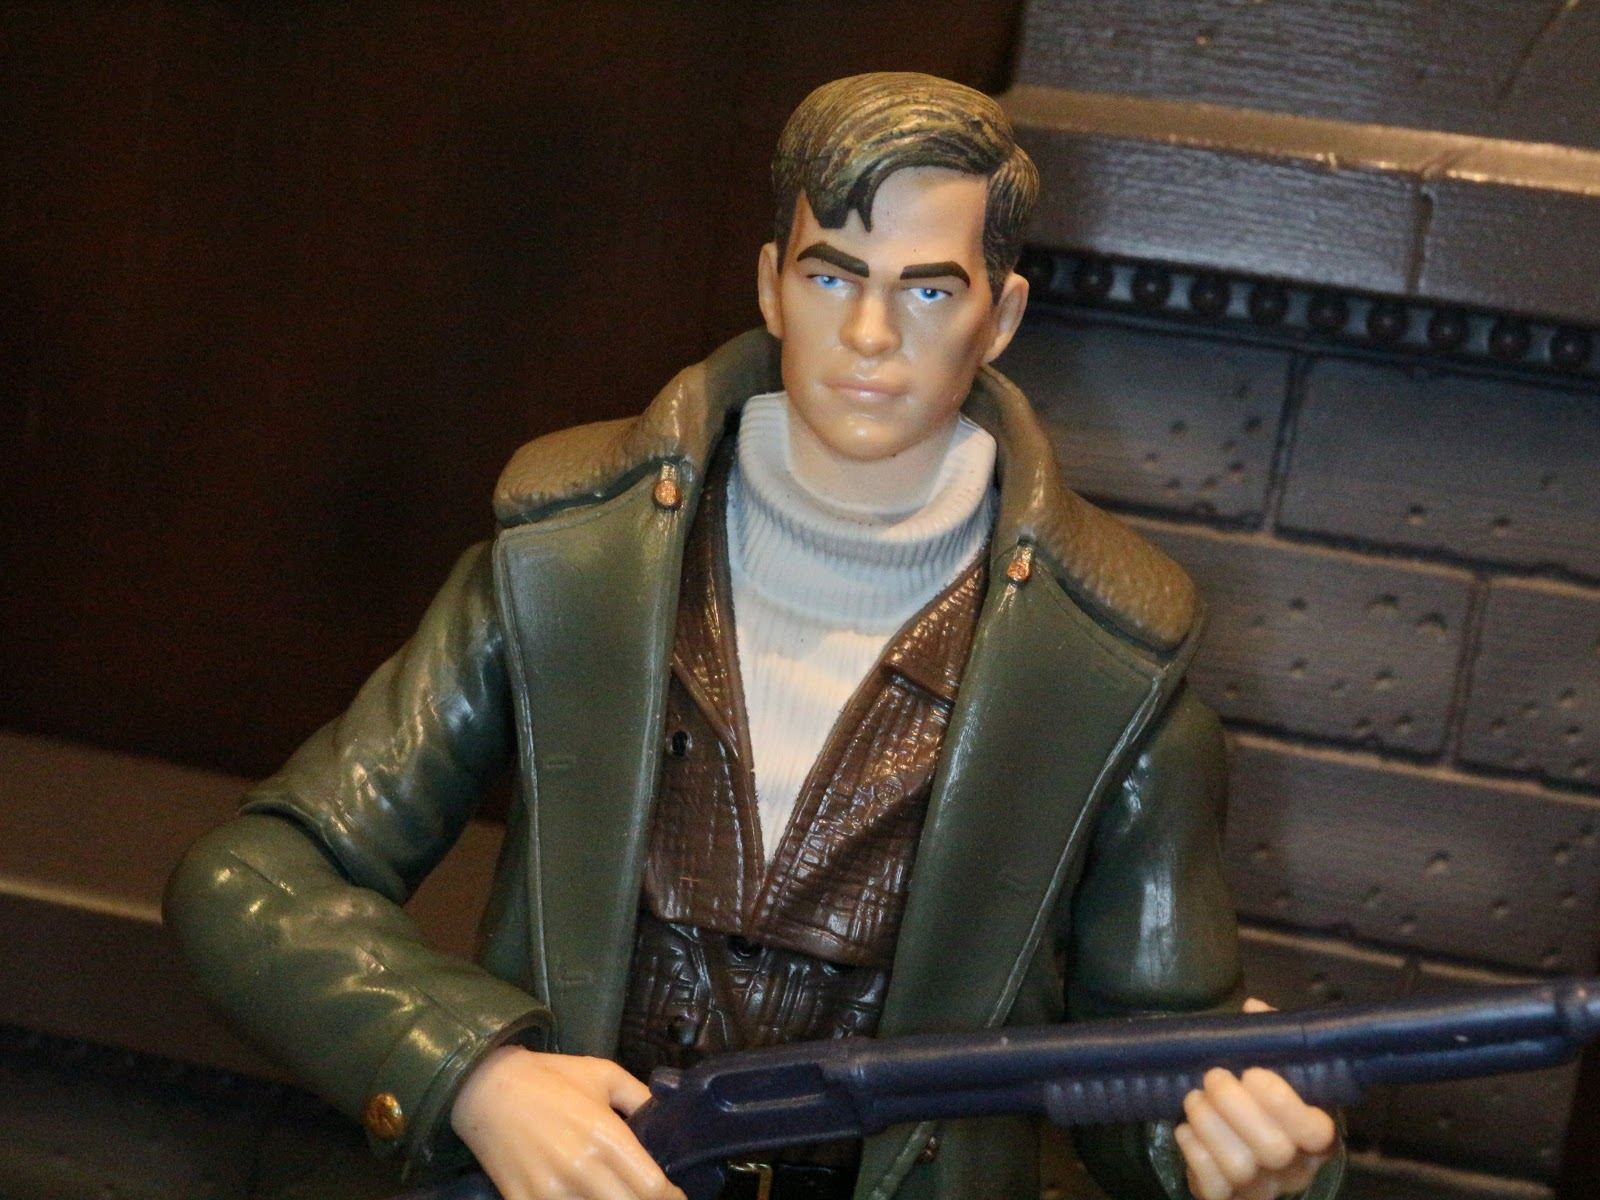 Action Figure Review Steve Trevor From DC Comics Multiverse Wonder Woman By Mattel